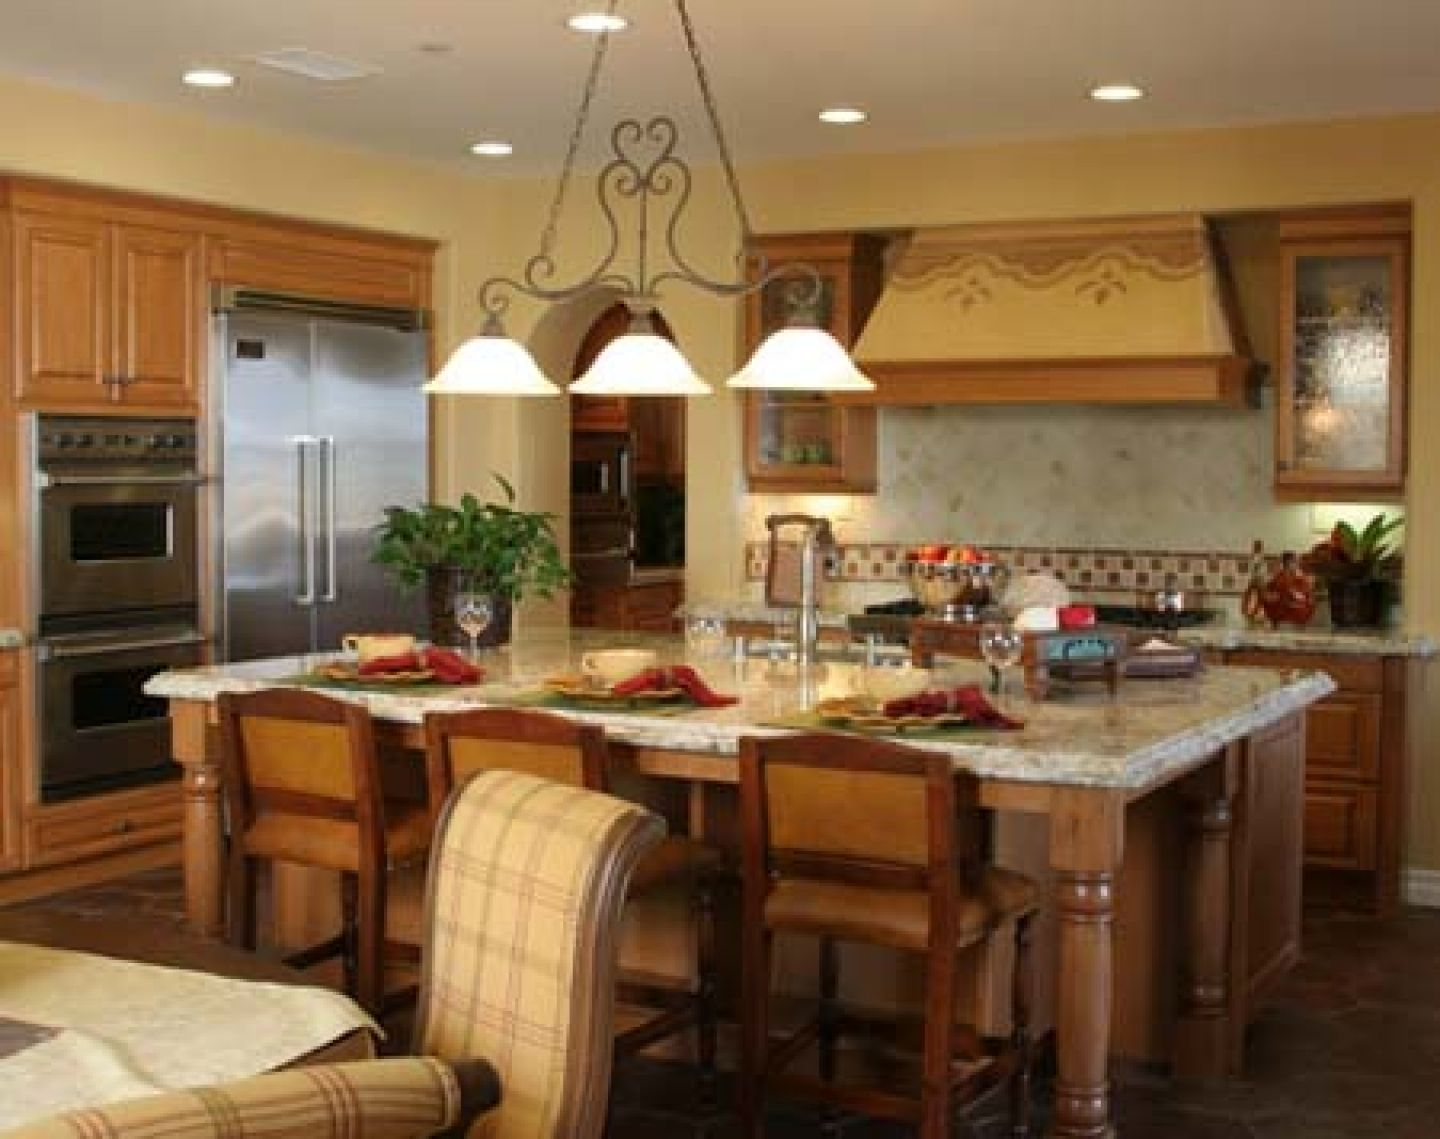 Country Style Kitchen Design Interesting Small Country Kitchen Designs  Country Kitchen Designs Country Decorating Design